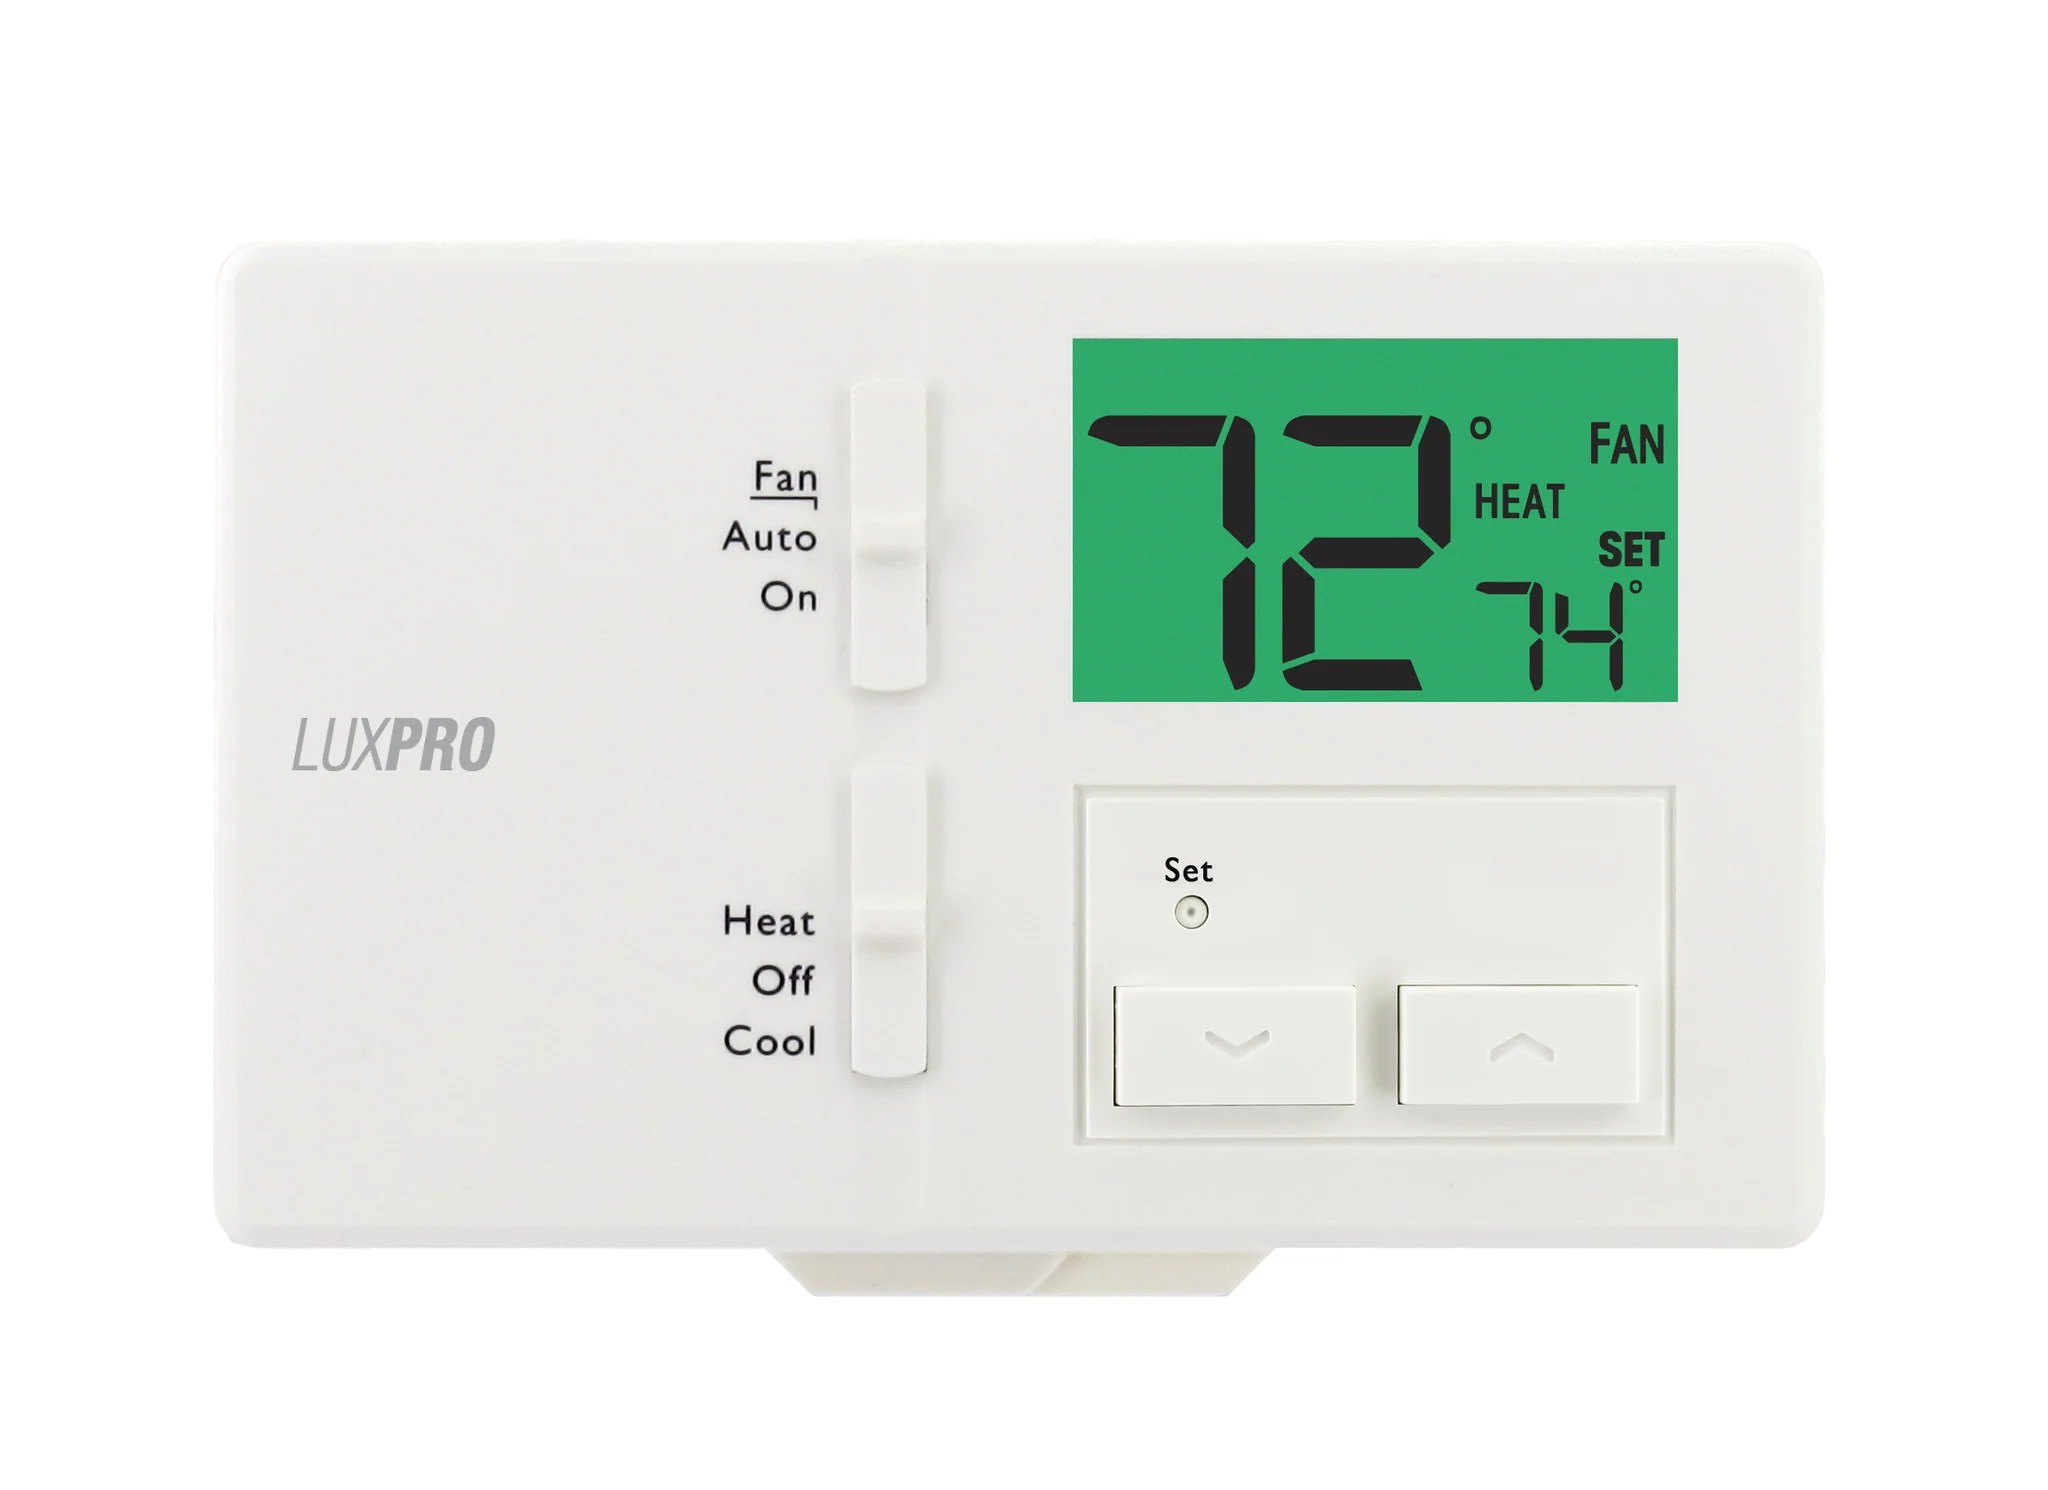 hight resolution of luxpro thermostat 2wire wiring diagram example electrical wiring 3m thermostat diagram luxpro p111 non programmable thermostat